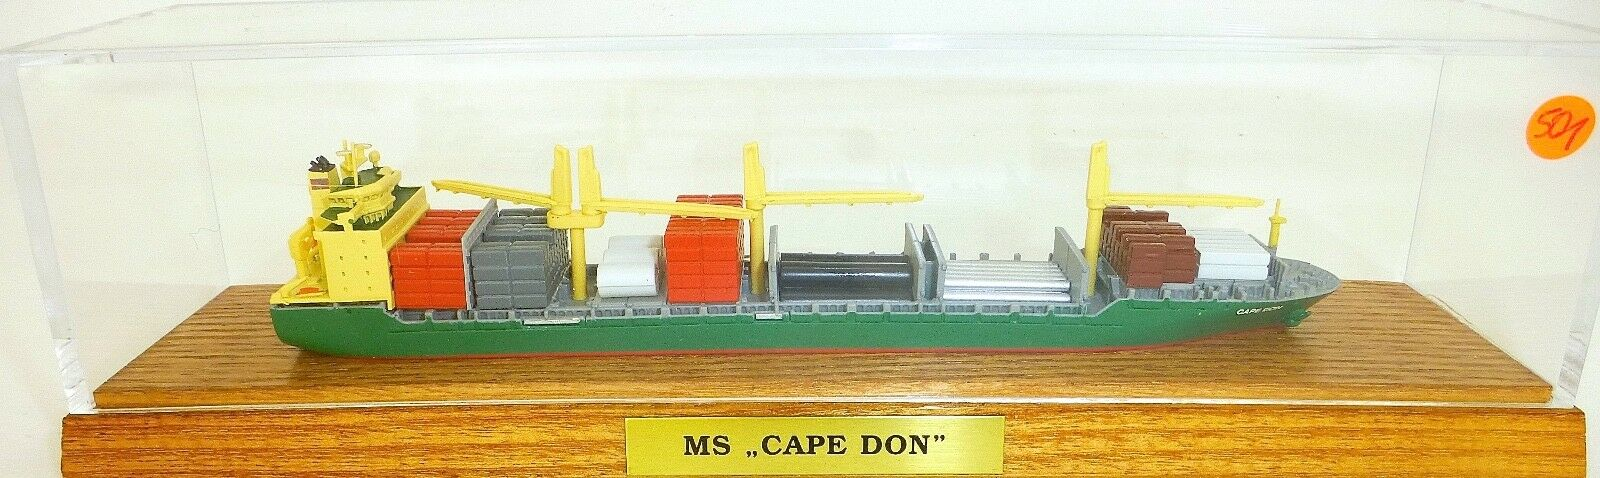 MS Cape Don Hansa CONRAD Ship Model 1 1250 shp501 å